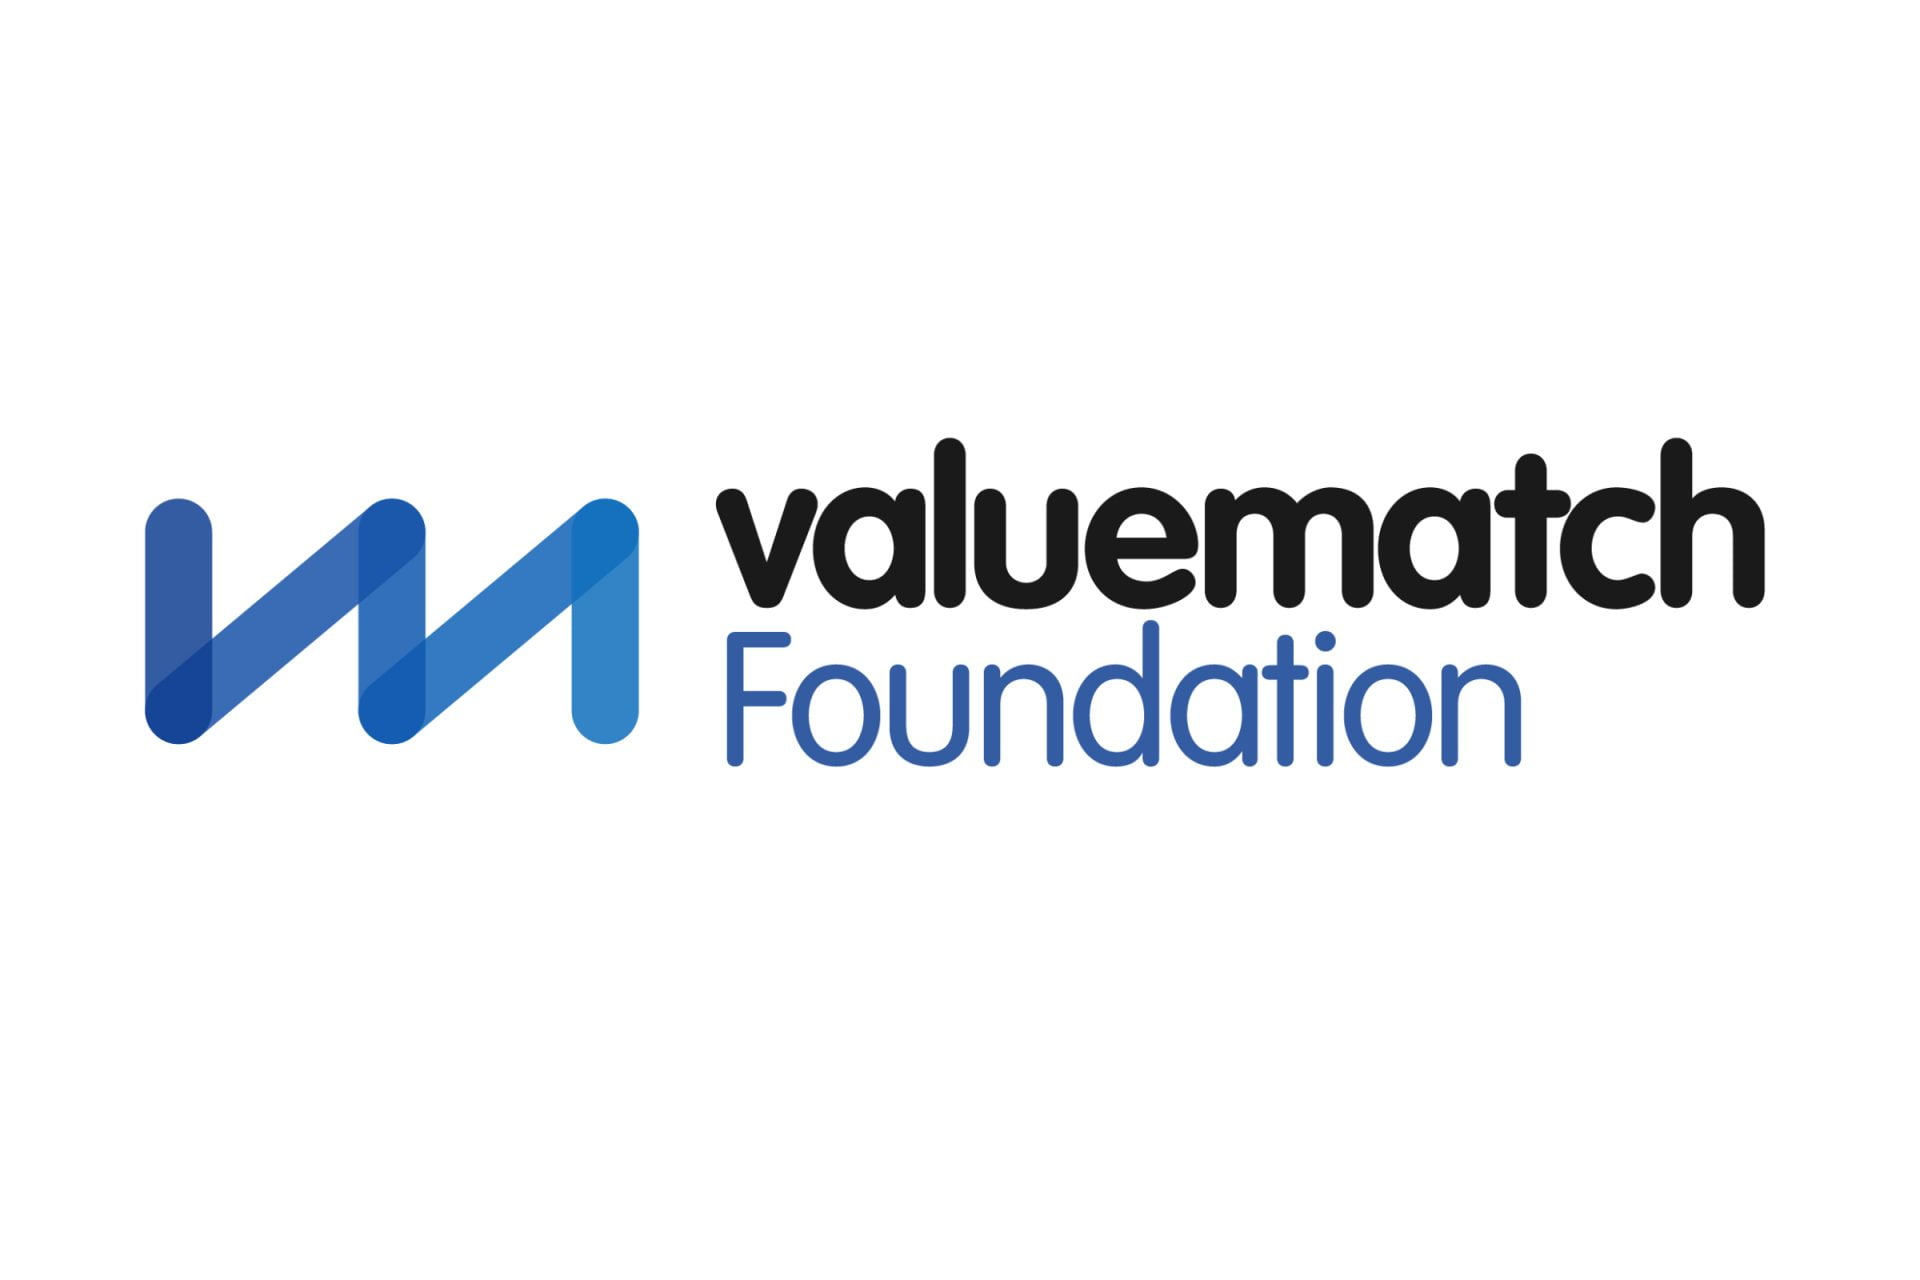 Value Match Foundation